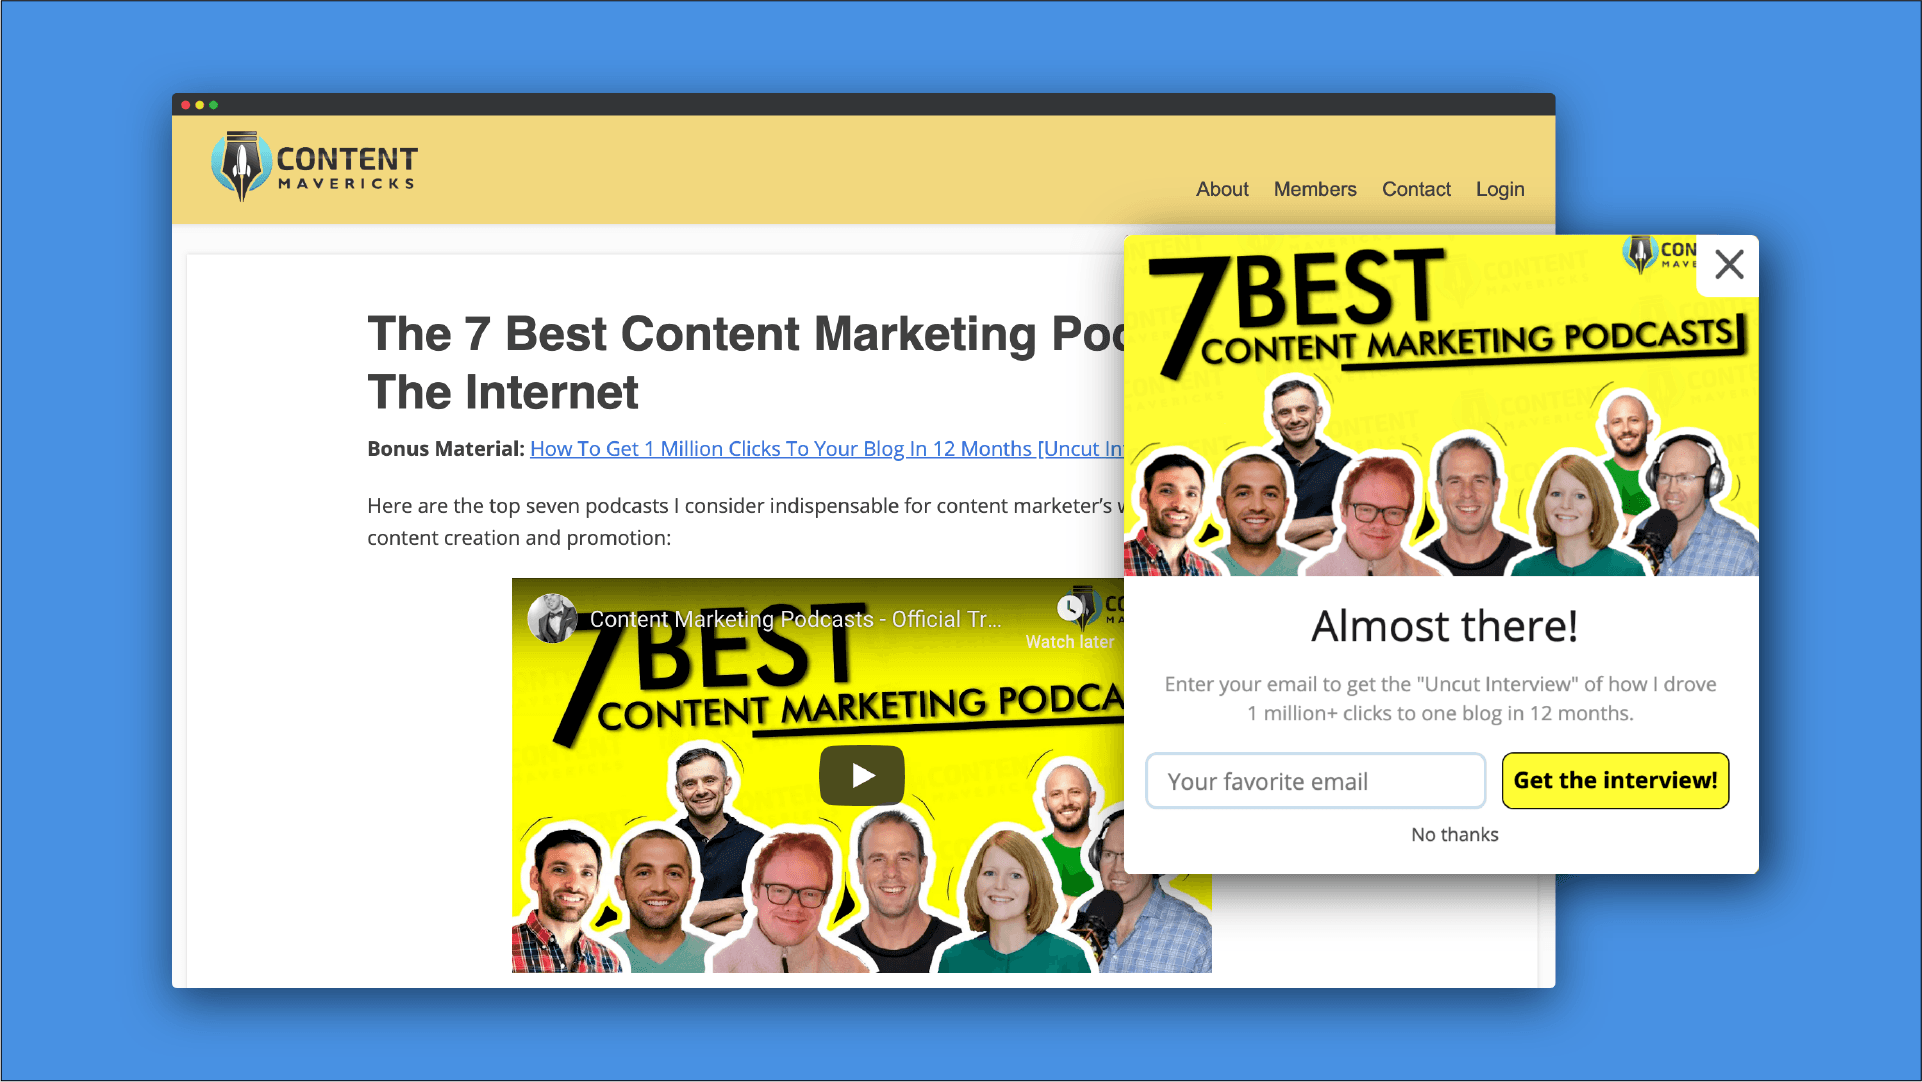 content marketing podcasts mockup image